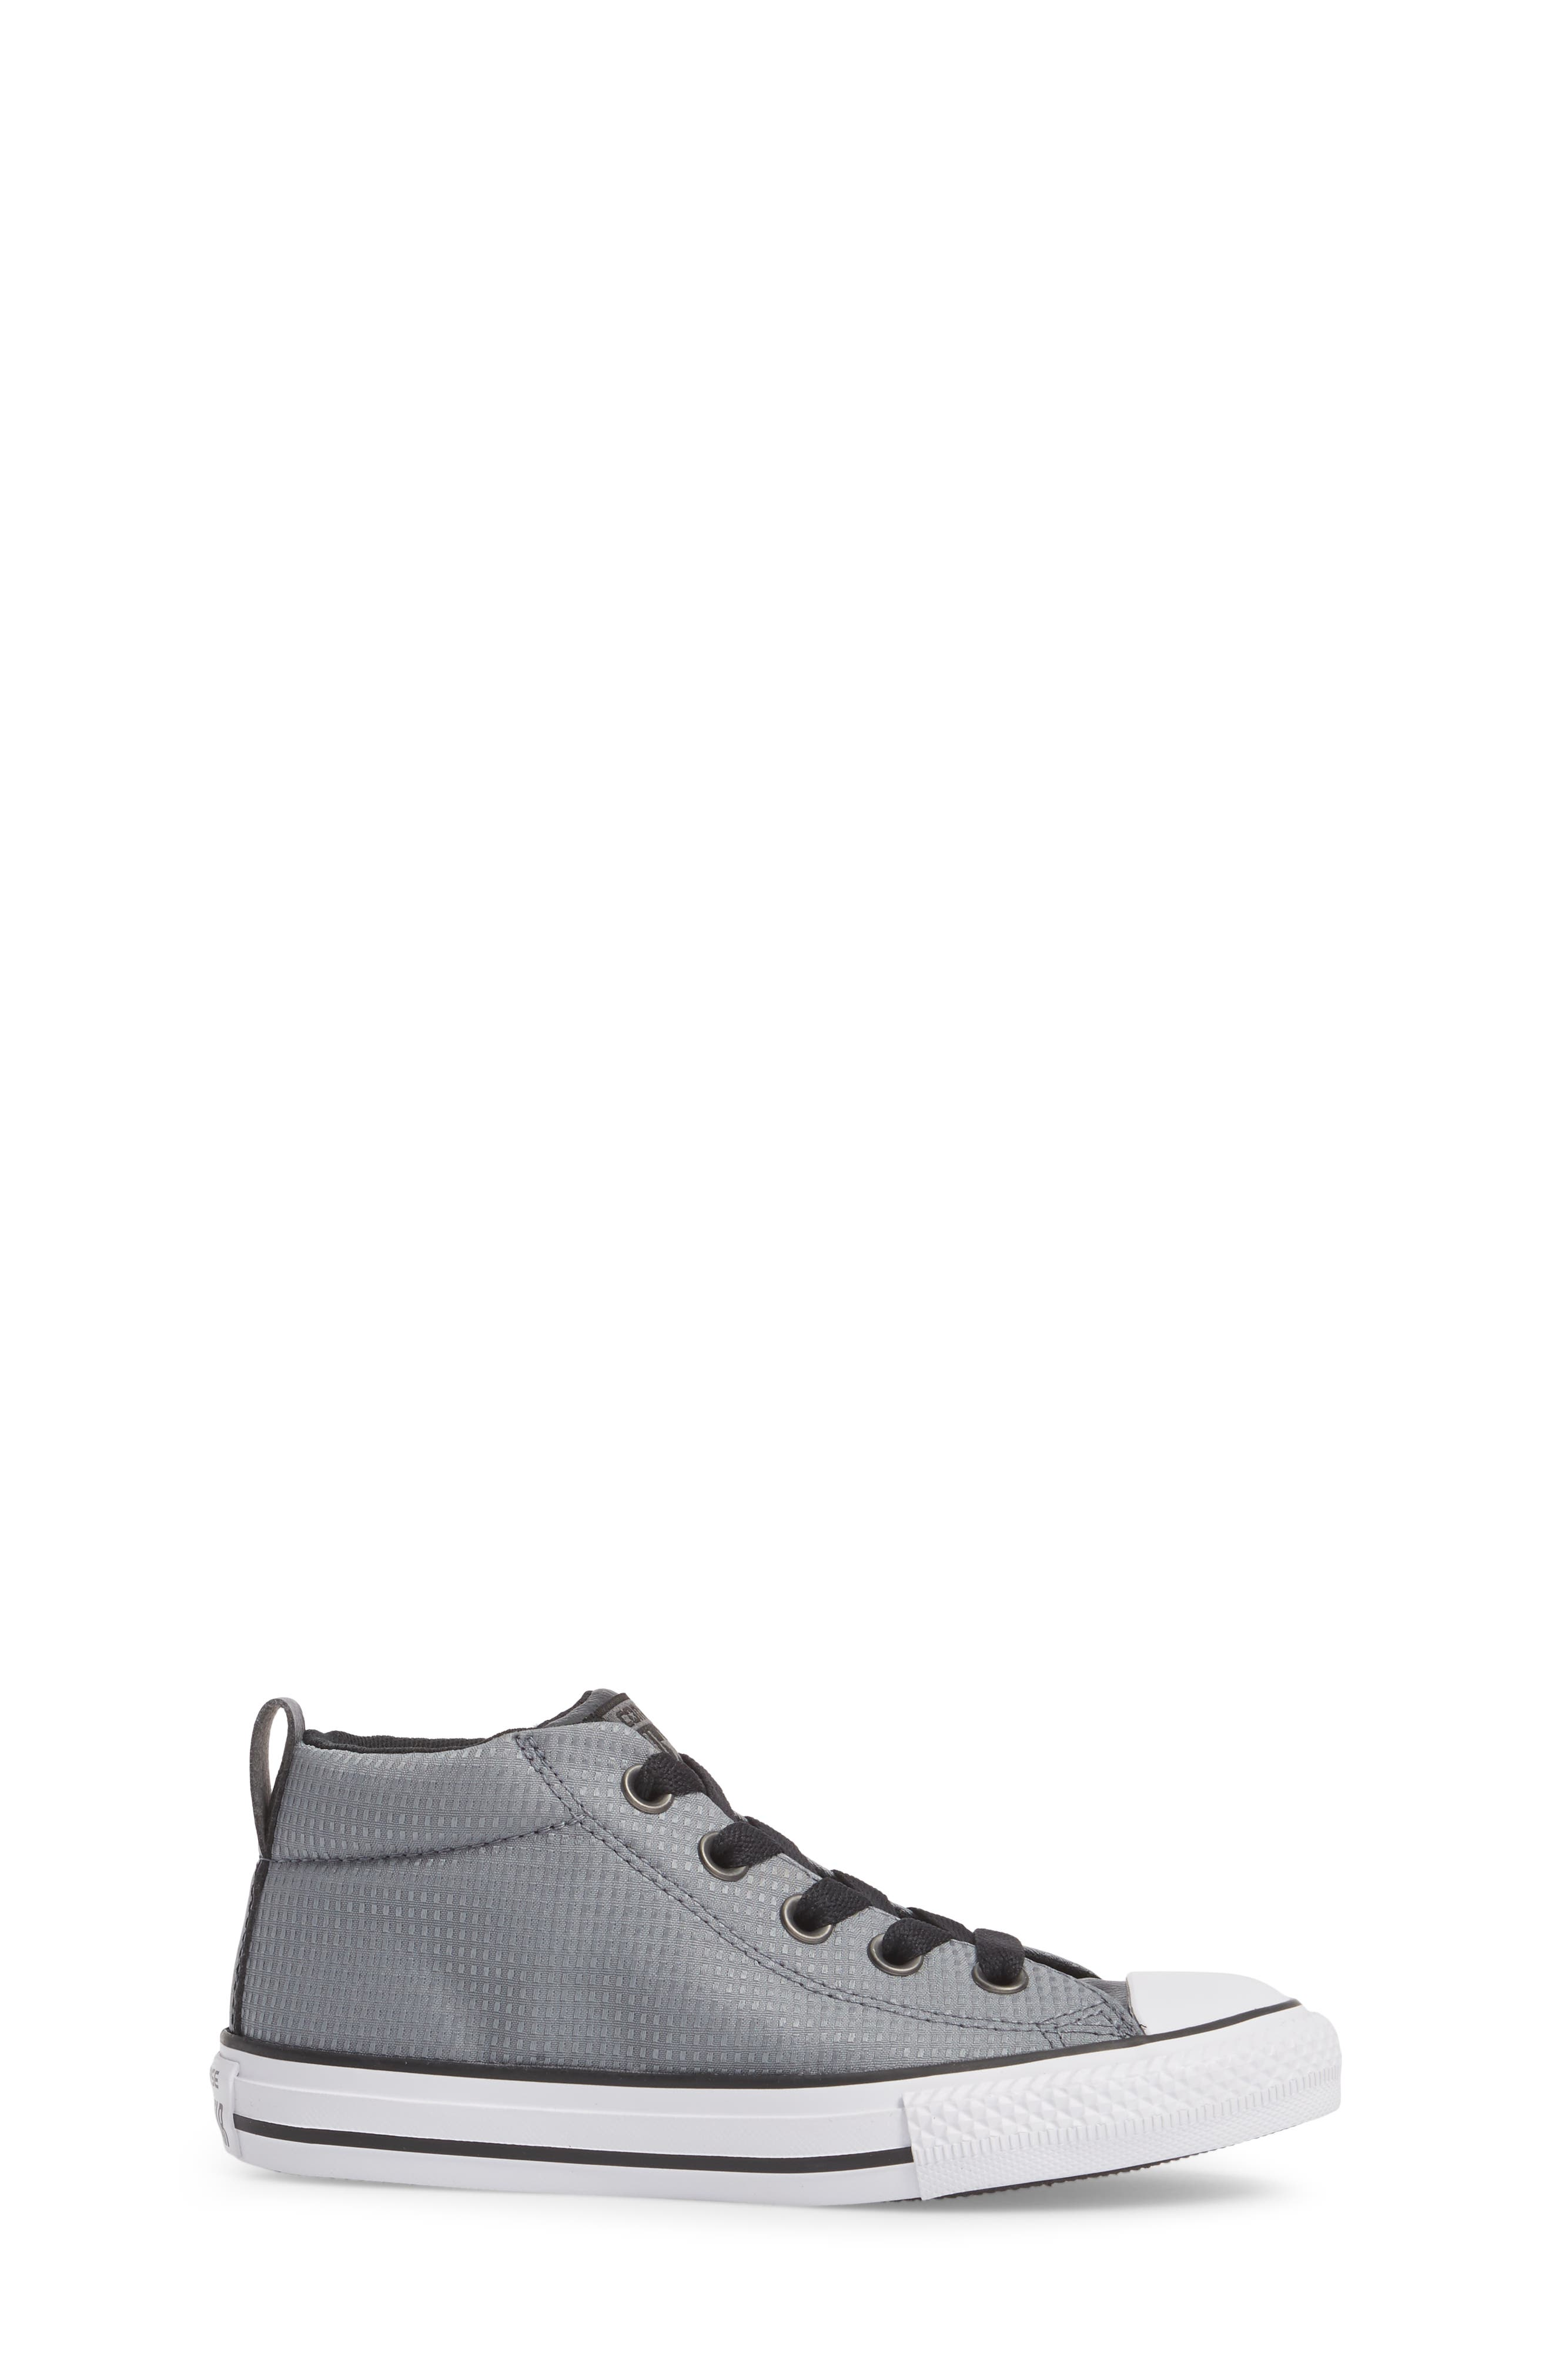 Chuck Taylor<sup>®</sup> All Star<sup>®</sup> Street Mid Backpack Sneaker,                             Alternate thumbnail 3, color,                             Cool Grey